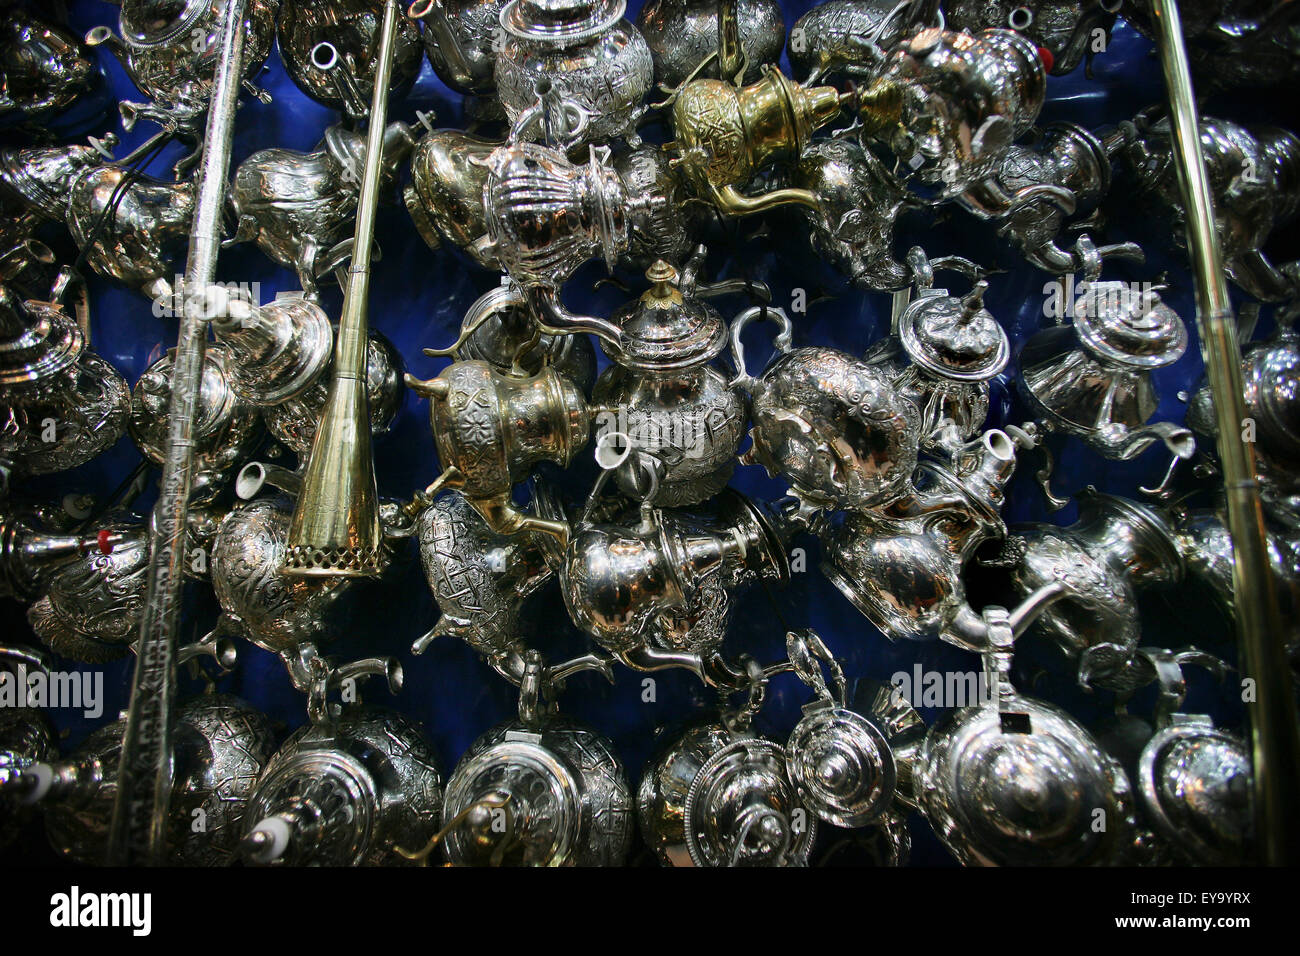 Silver Teapots In A Market Stall In The Souk. - Stock Image